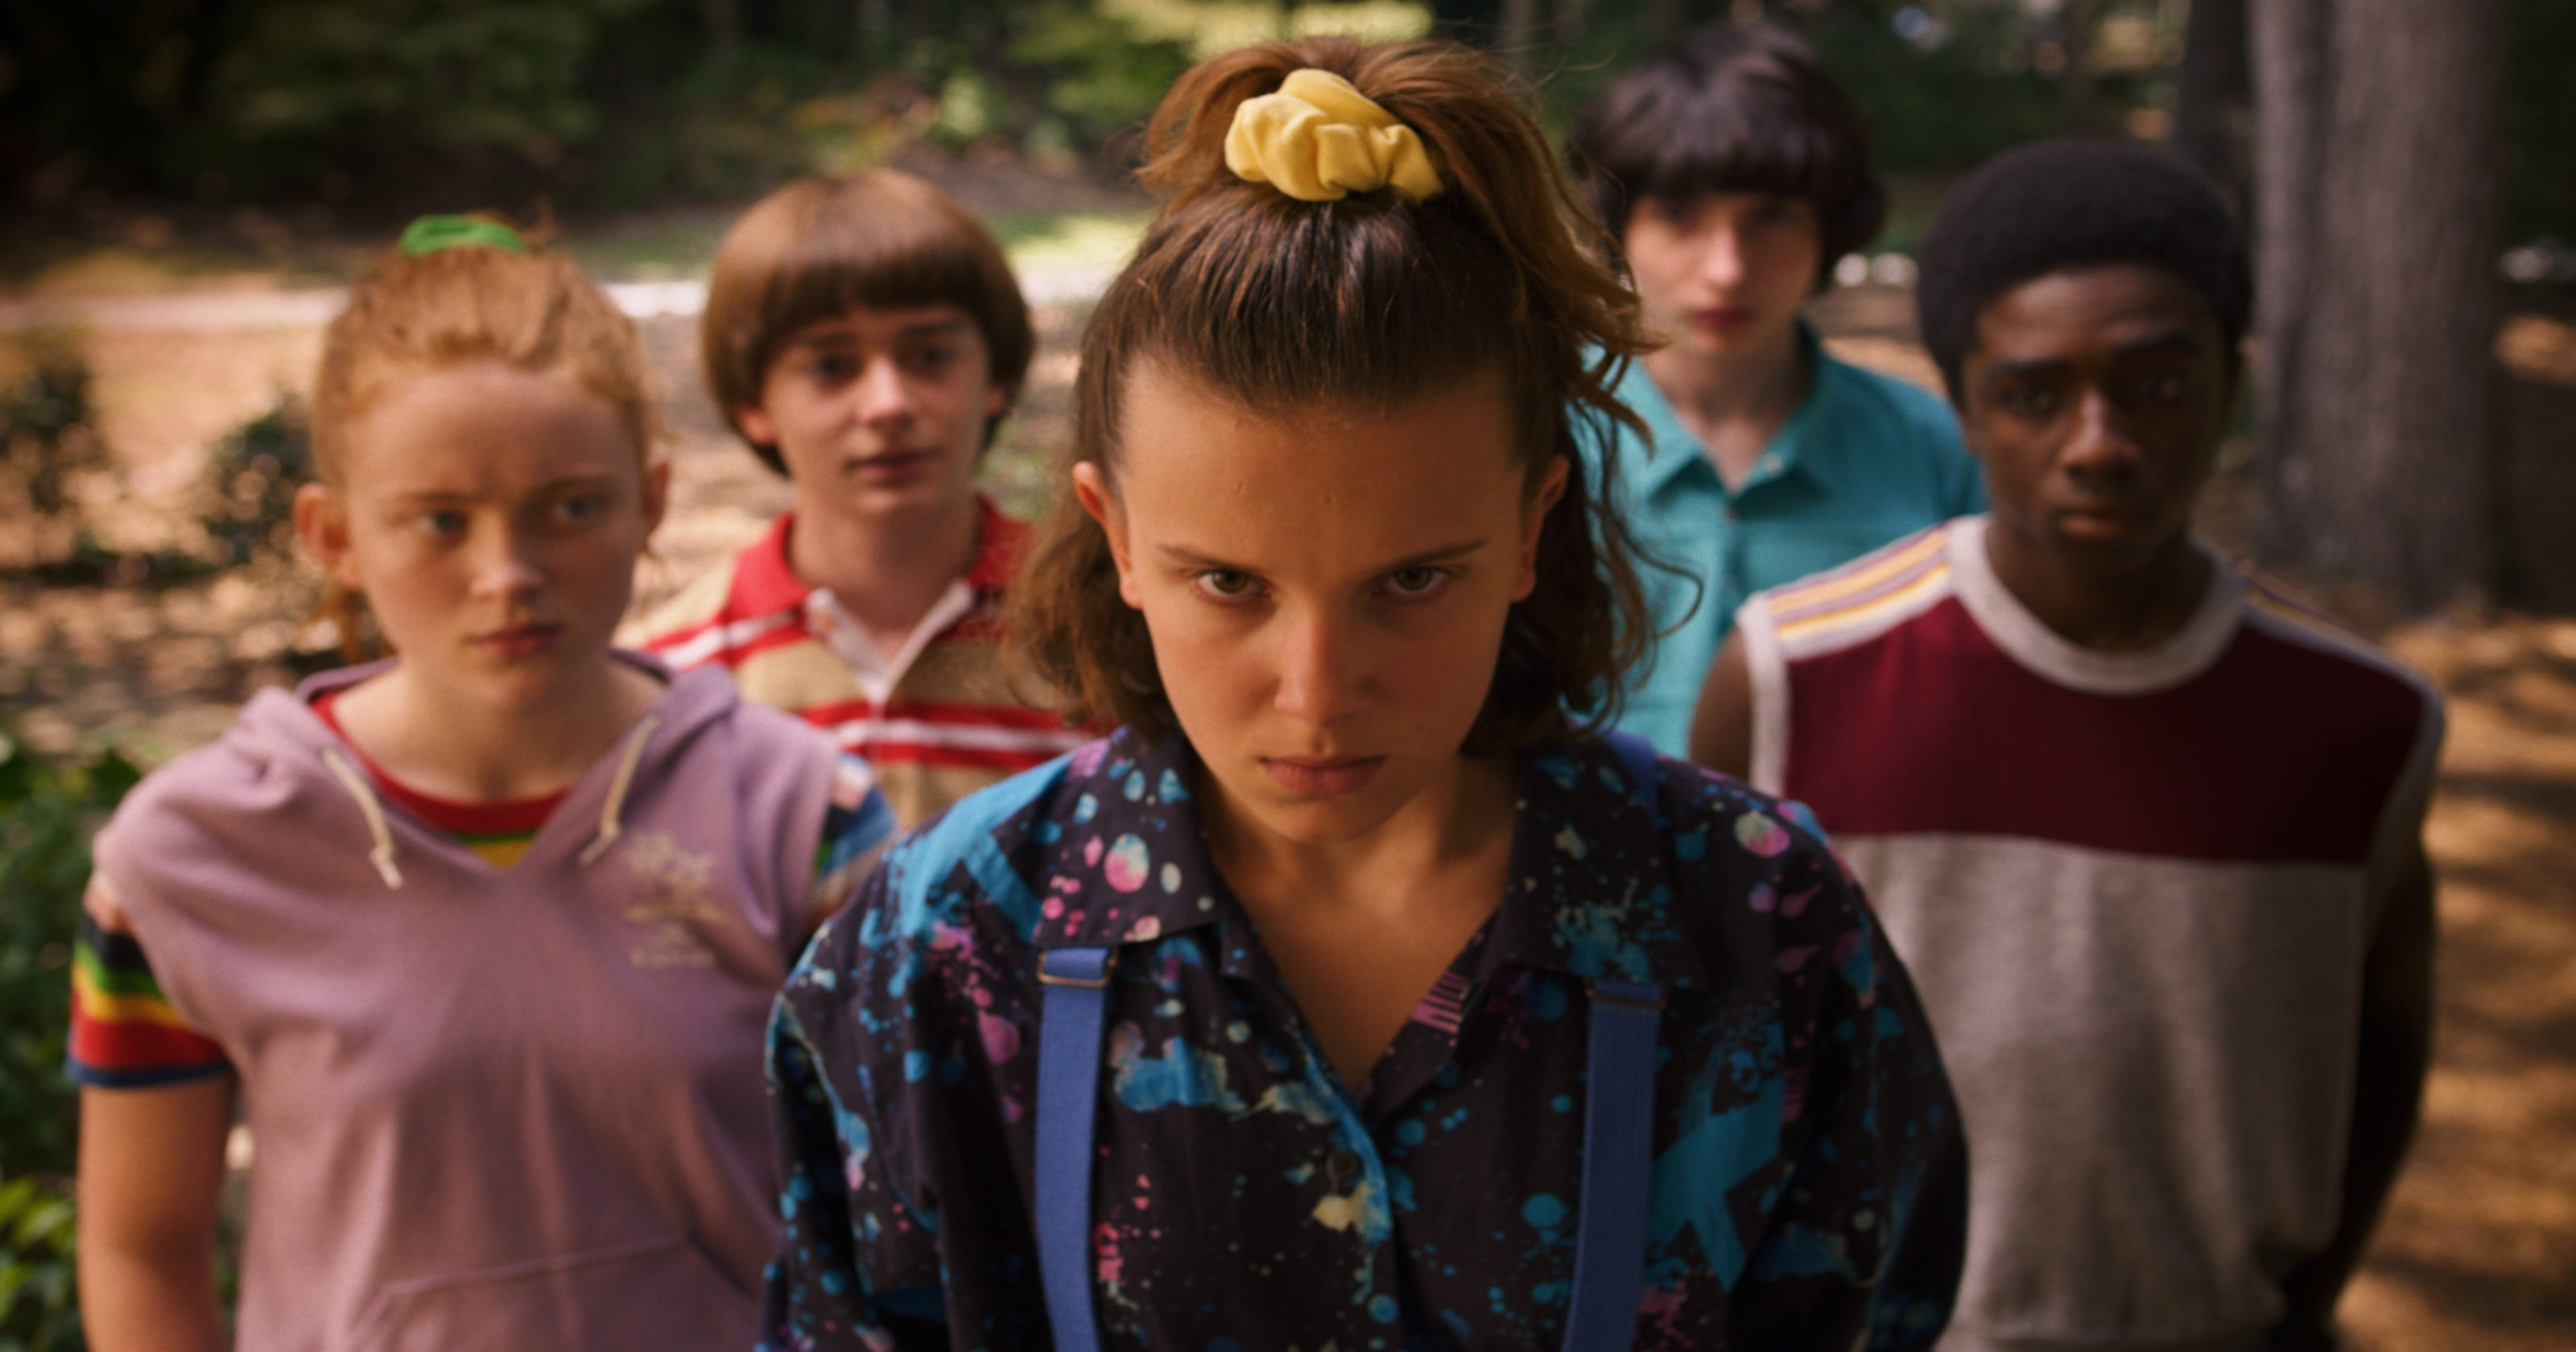 Purdue plans to recreate 'Stranger Things 3' shirt as